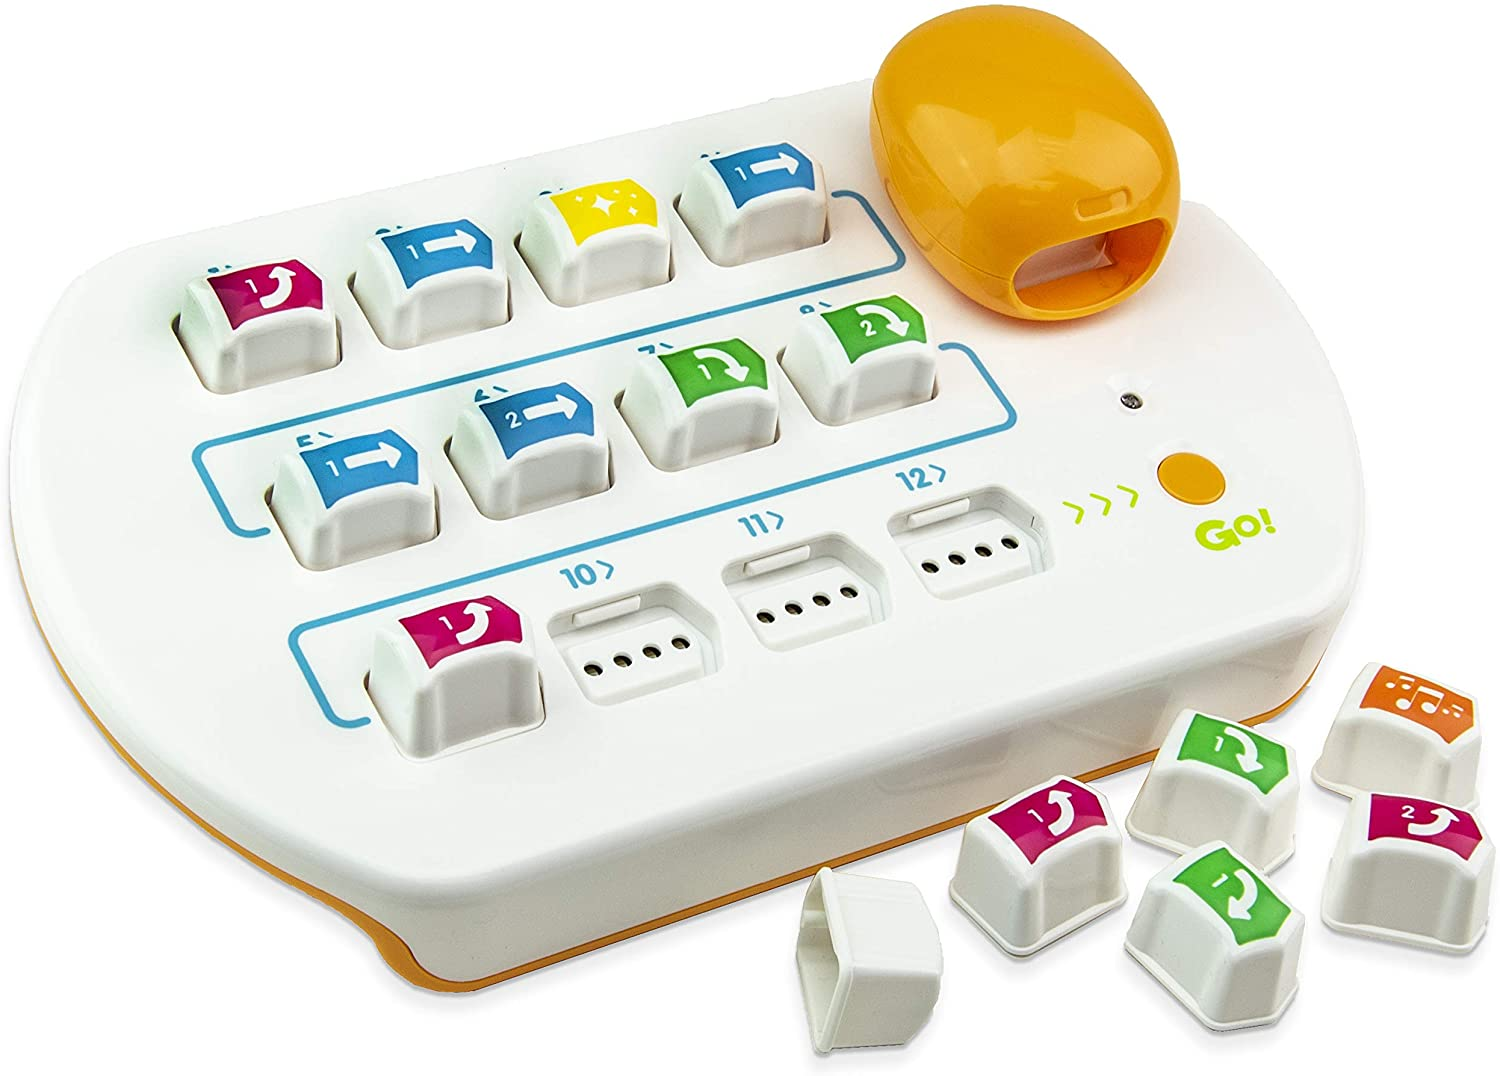 EL10T Coding Robot for Young Children Keyboard